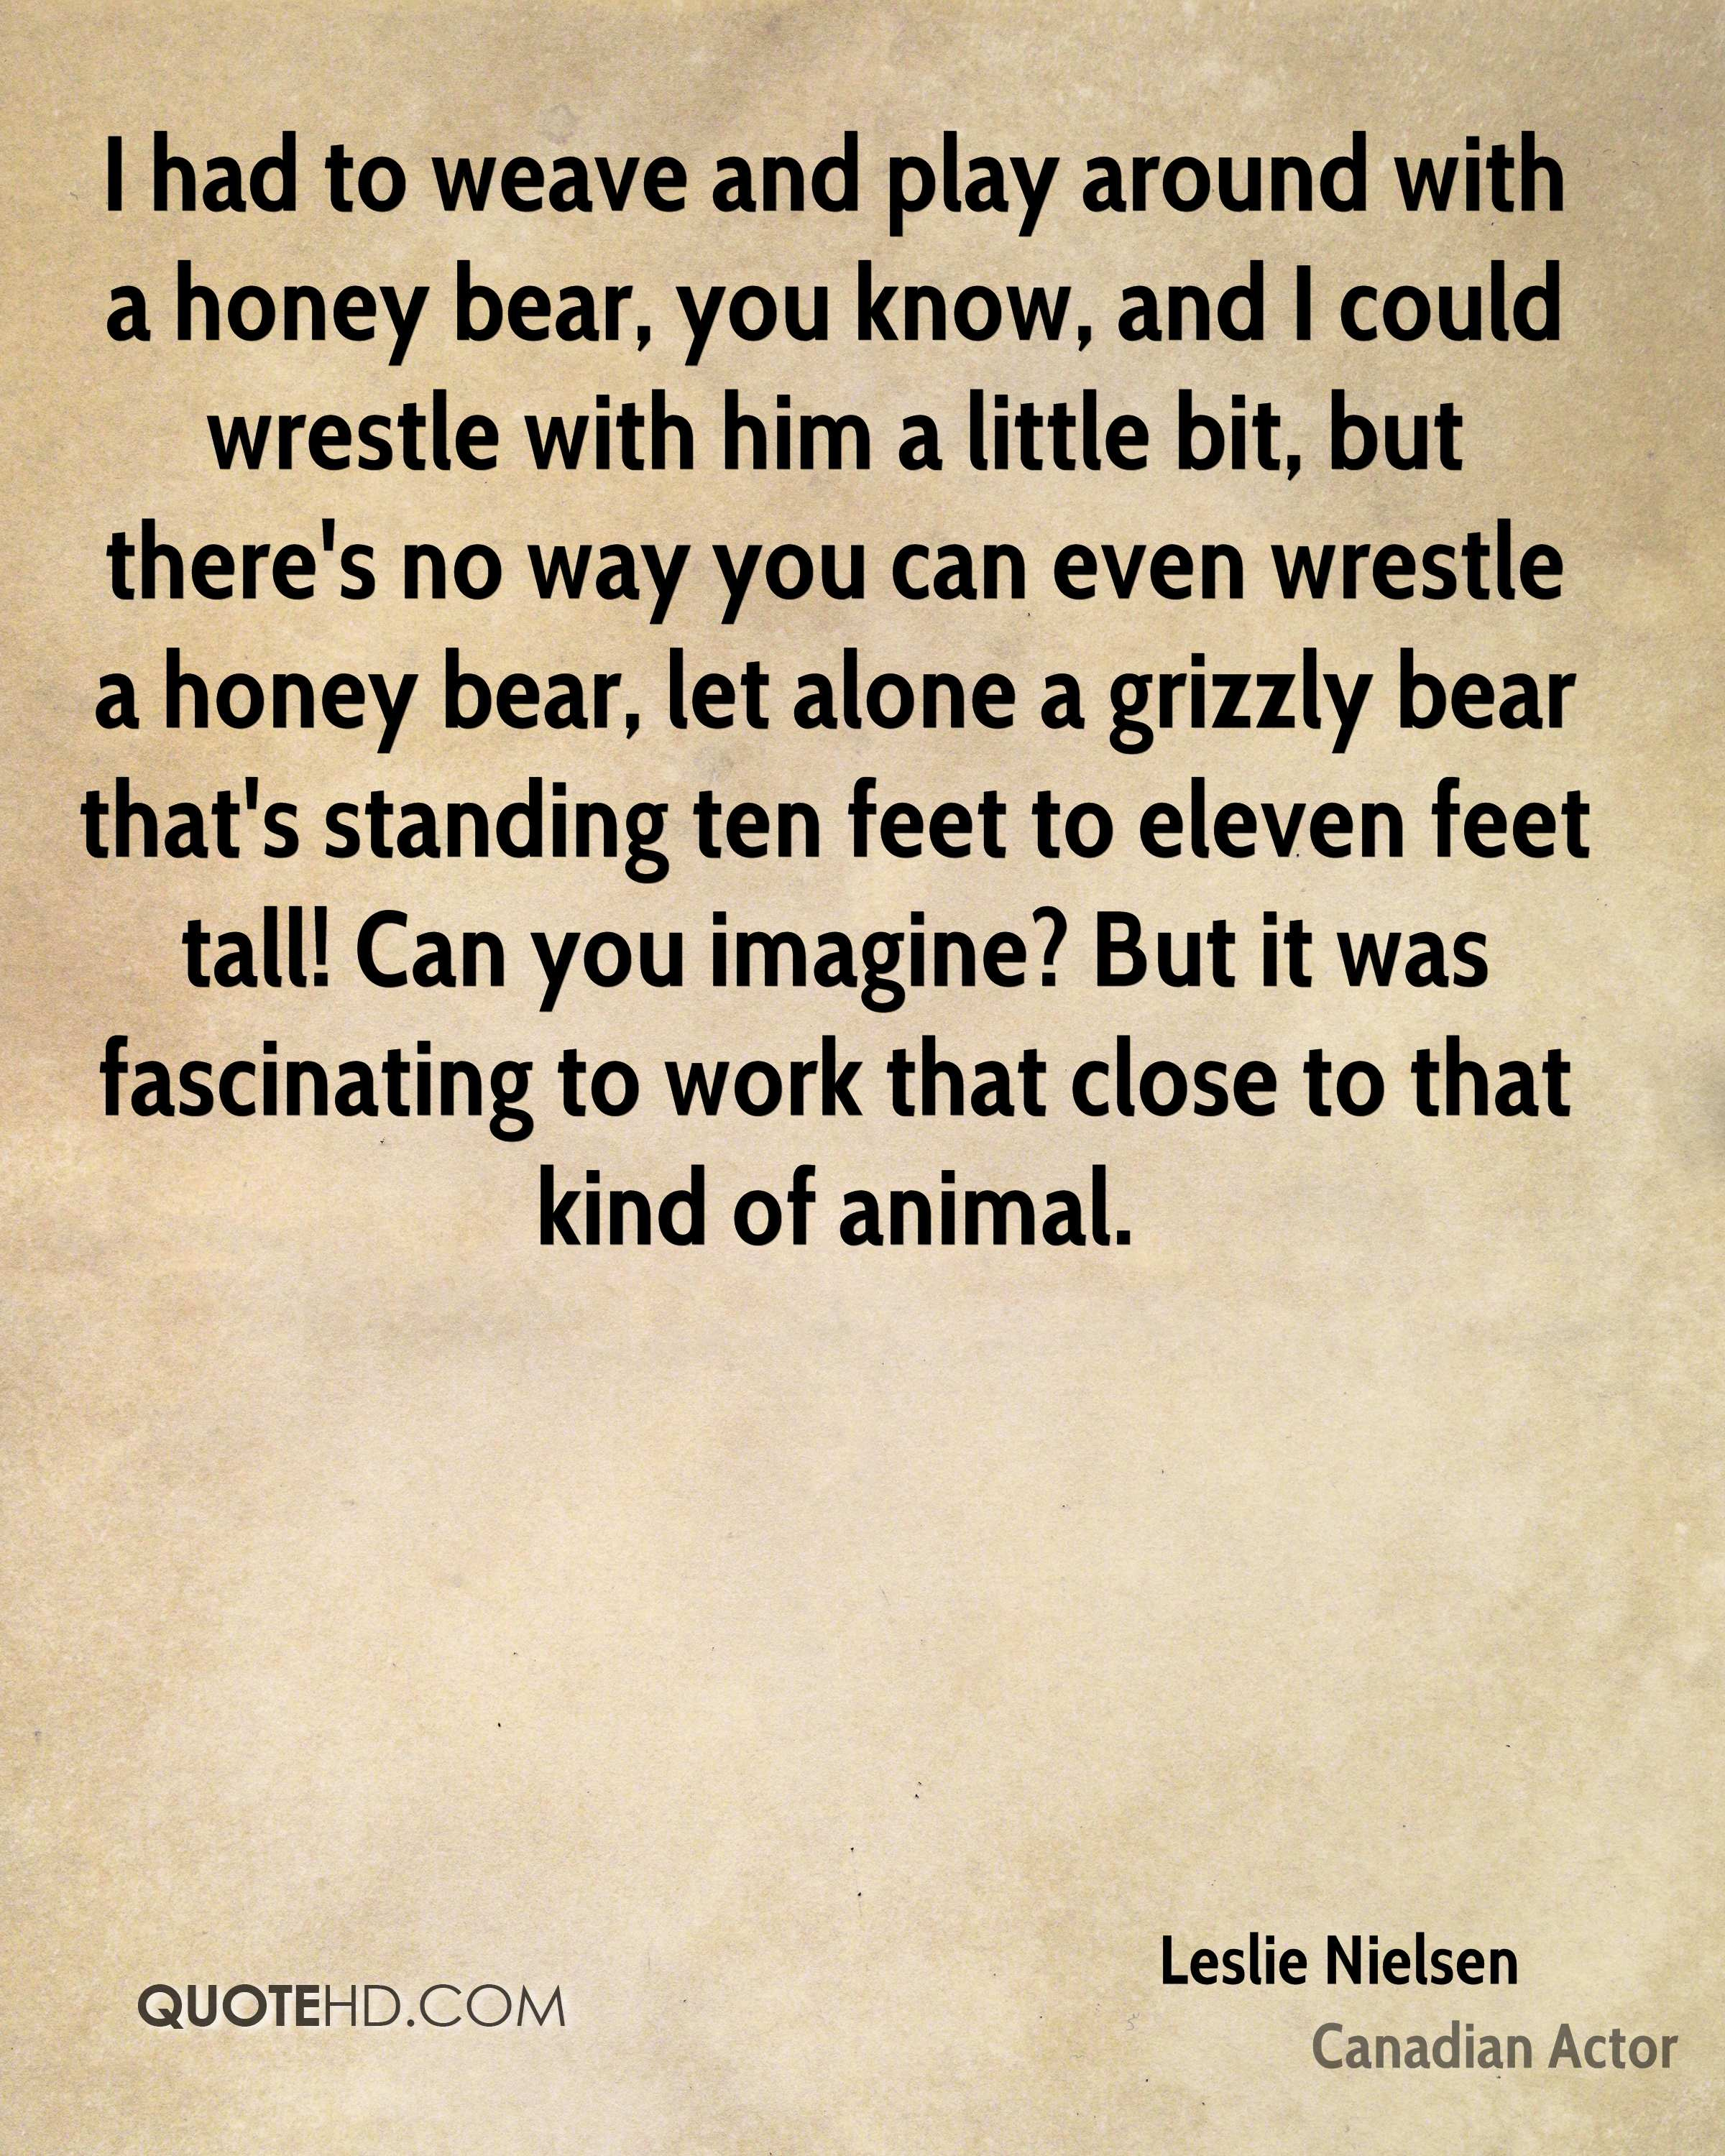 I had to weave and play around with a honey bear, you know, and I could wrestle with him a little bit, but there's no way you can even wrestle a honey bear, let alone a grizzly bear that's standing ten feet to eleven feet tall! Can you imagine? But it was fascinating to work that close to that kind of animal.